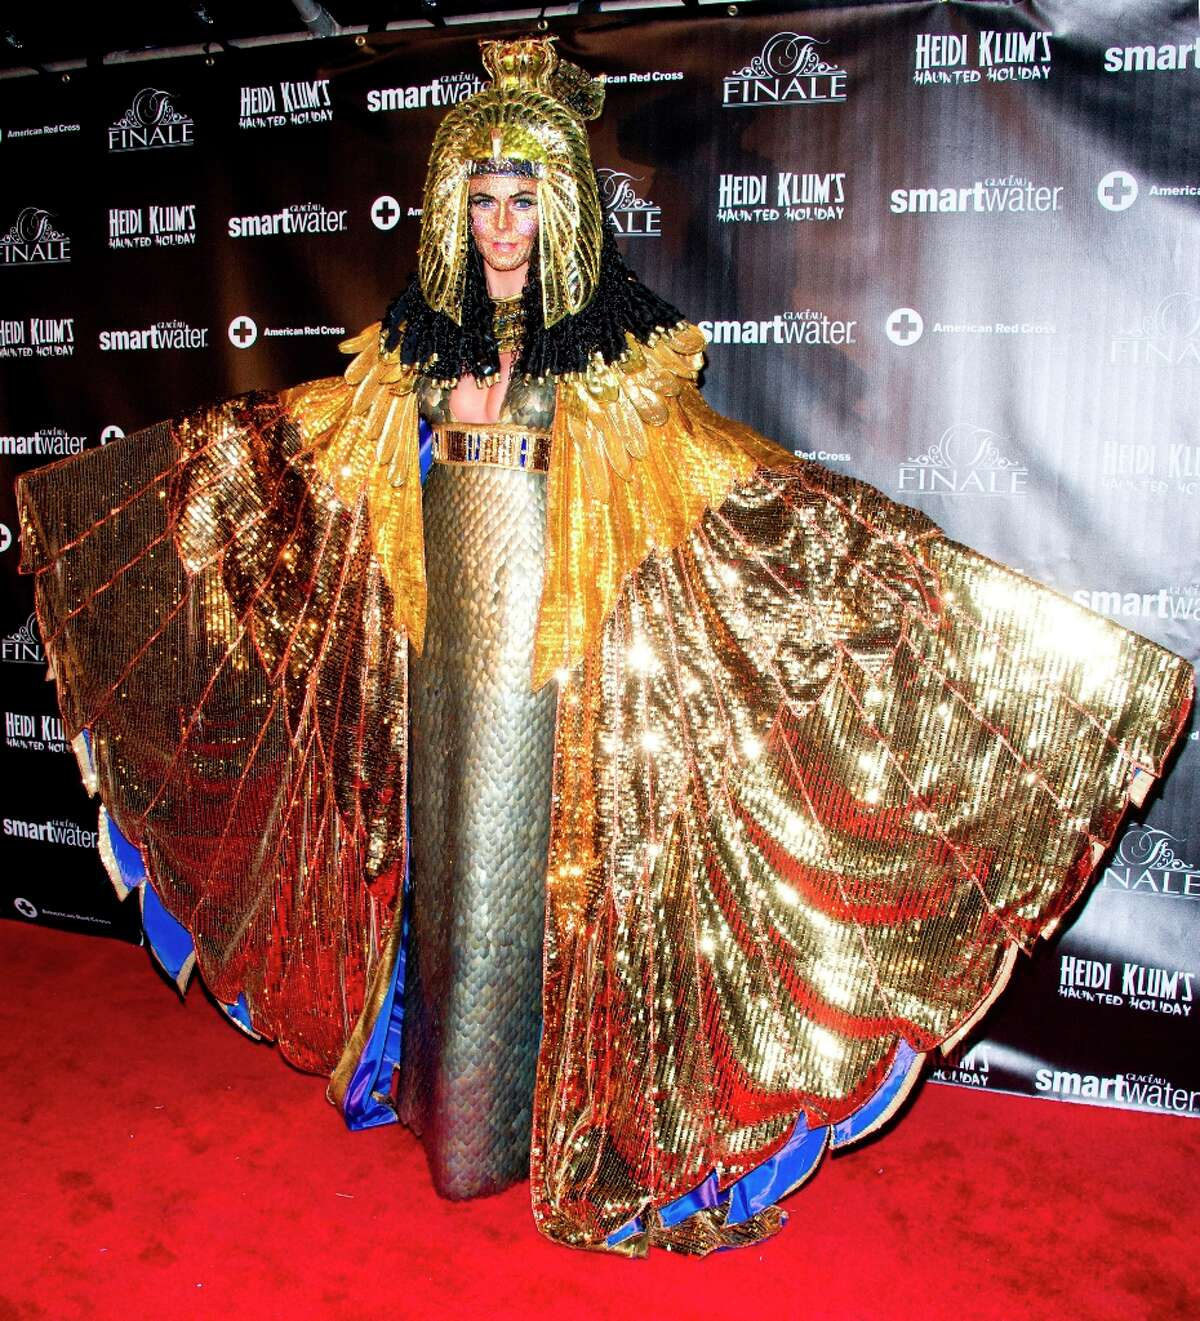 Heidi Klum, dressed as Cleopatra, attends her Haunted Holiday Party benefiting Superstorm Sandy relief efforts, on Saturday, Dec. 1, 2012 in New York.